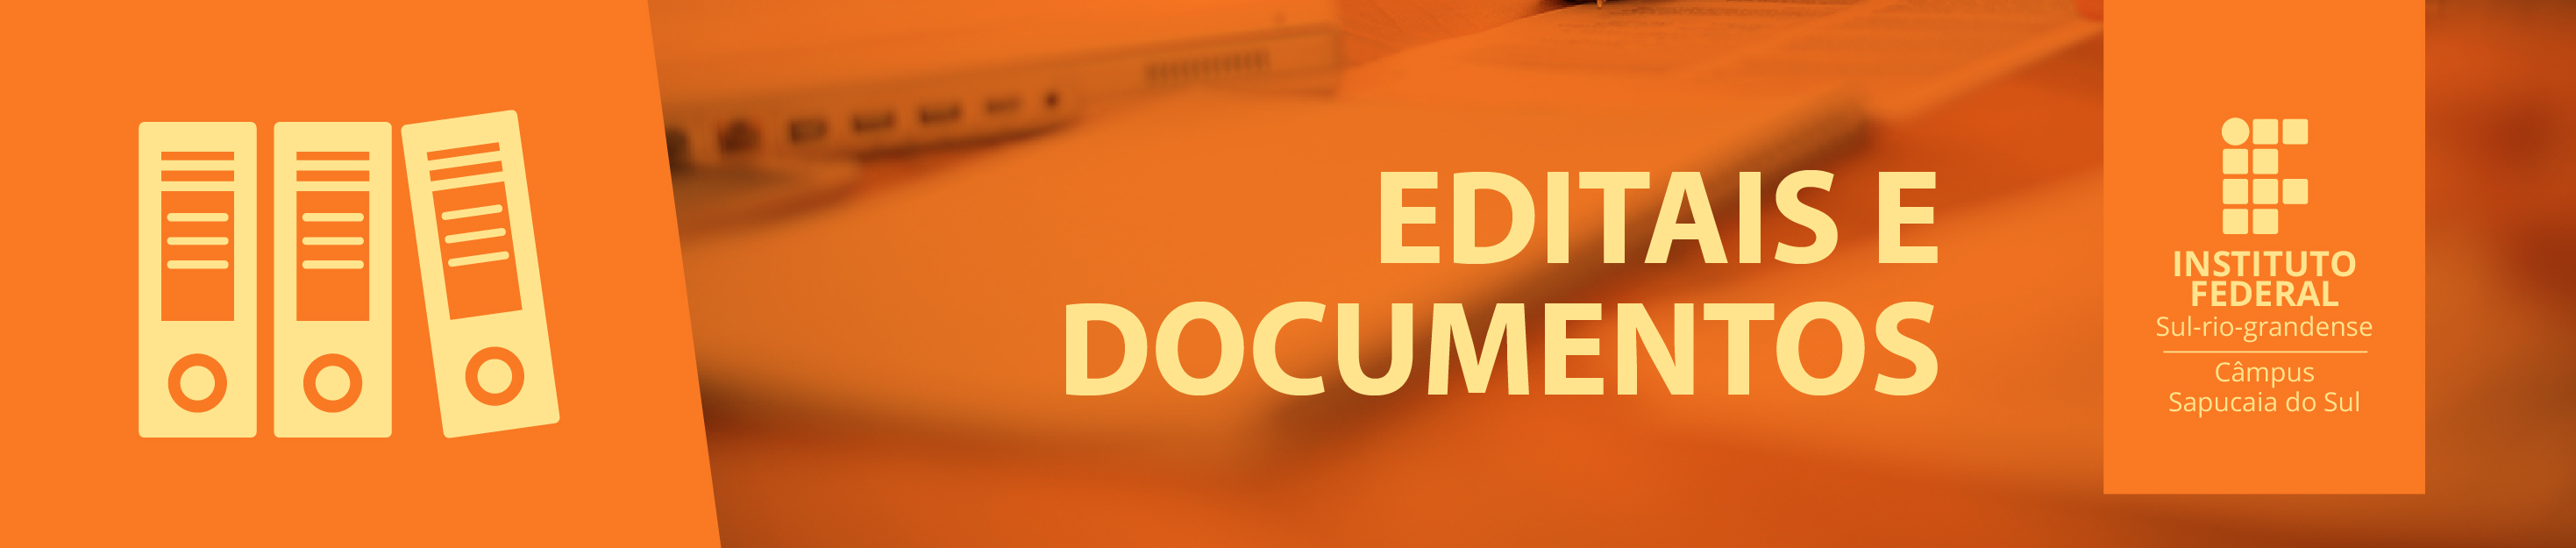 Editais & Documentos